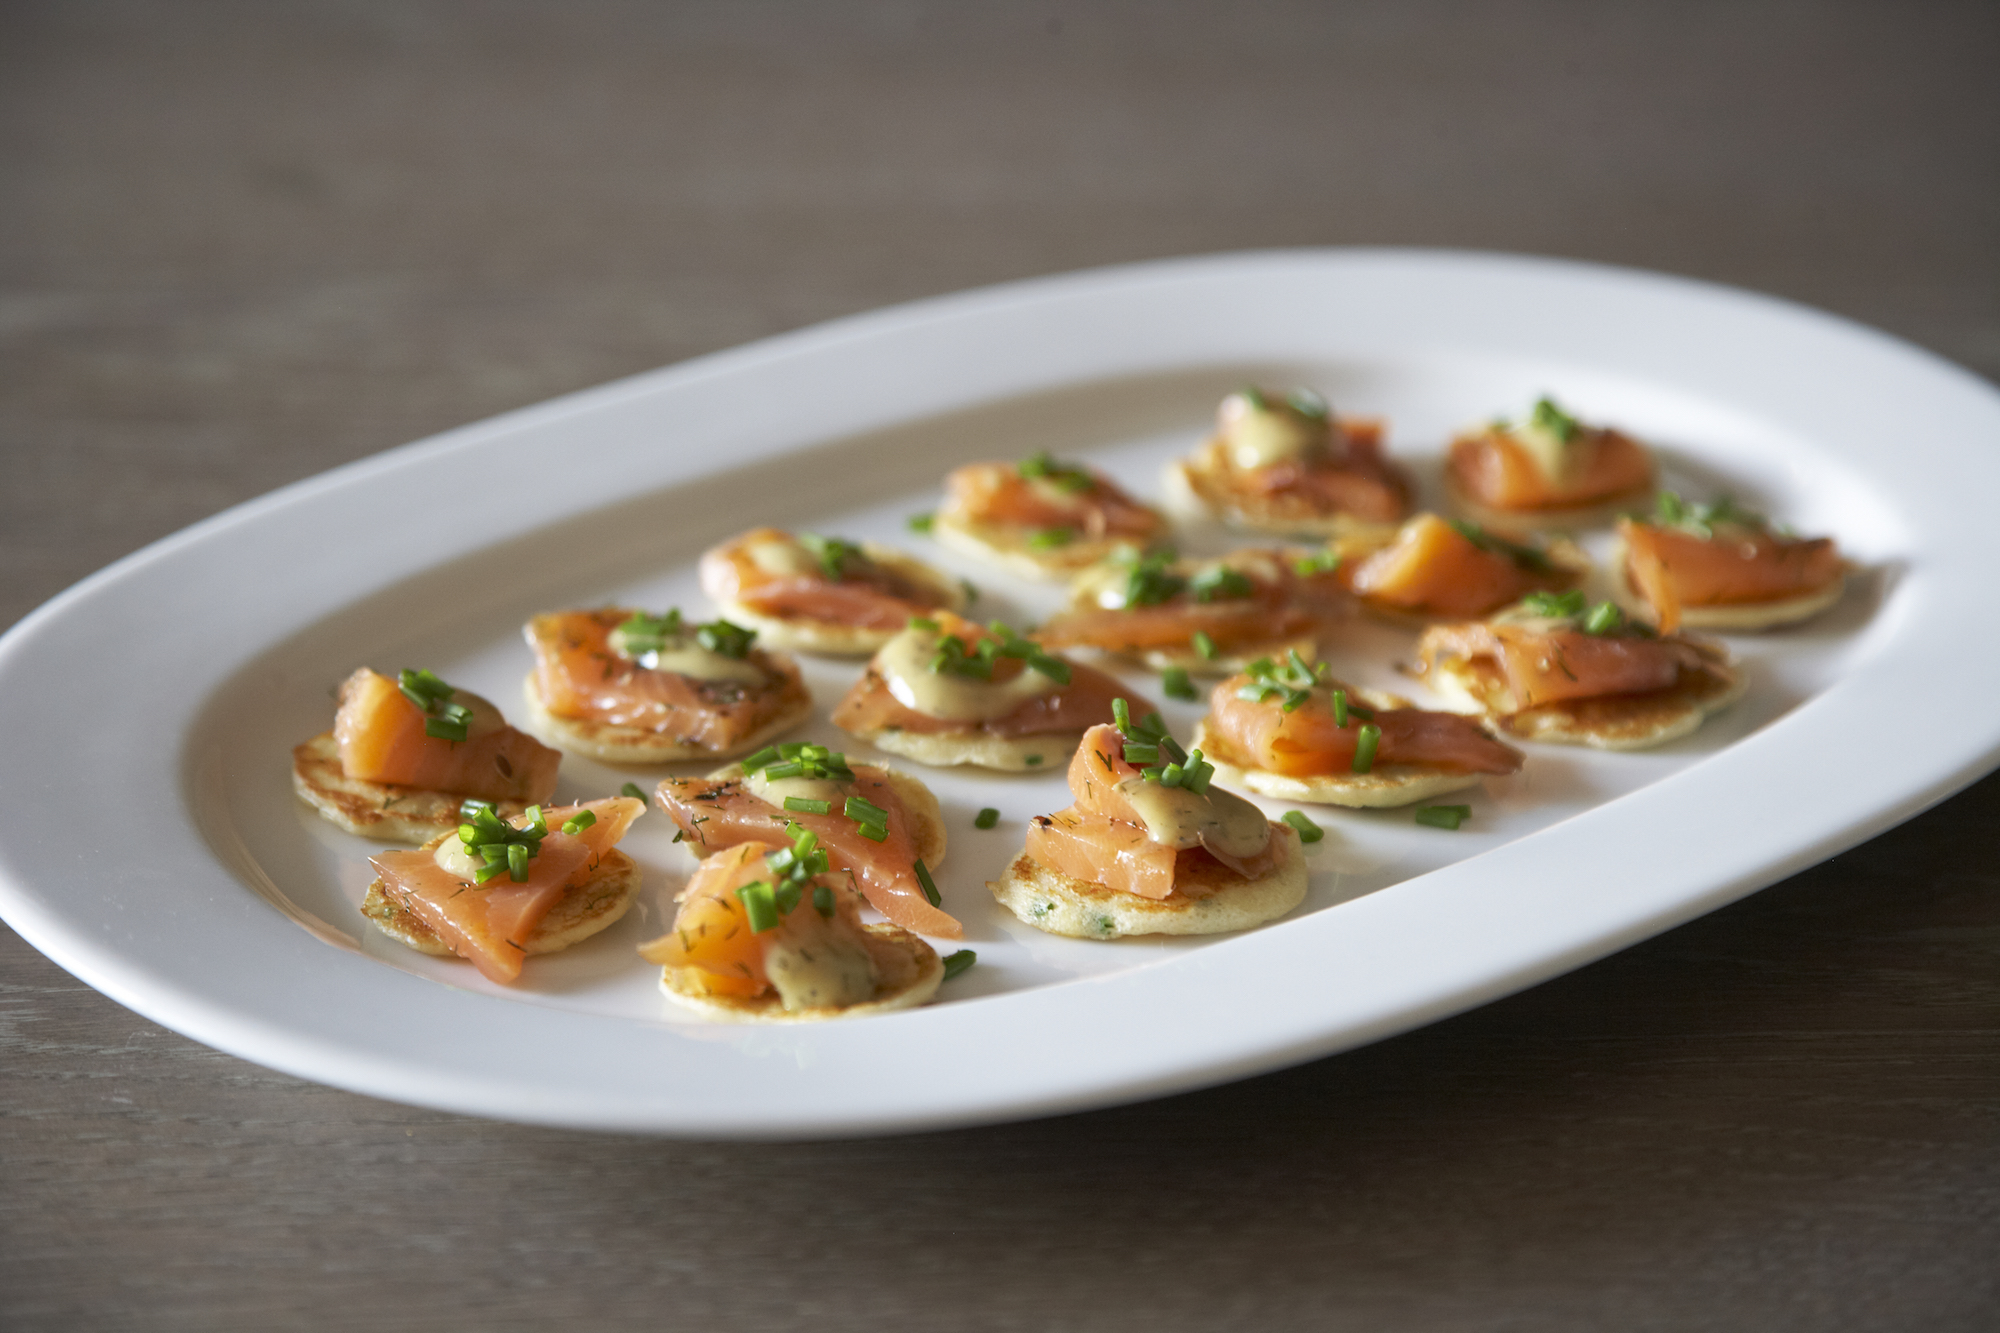 smoked-salmon-and-chive-blinis-humphrey-munson-kitchen-1